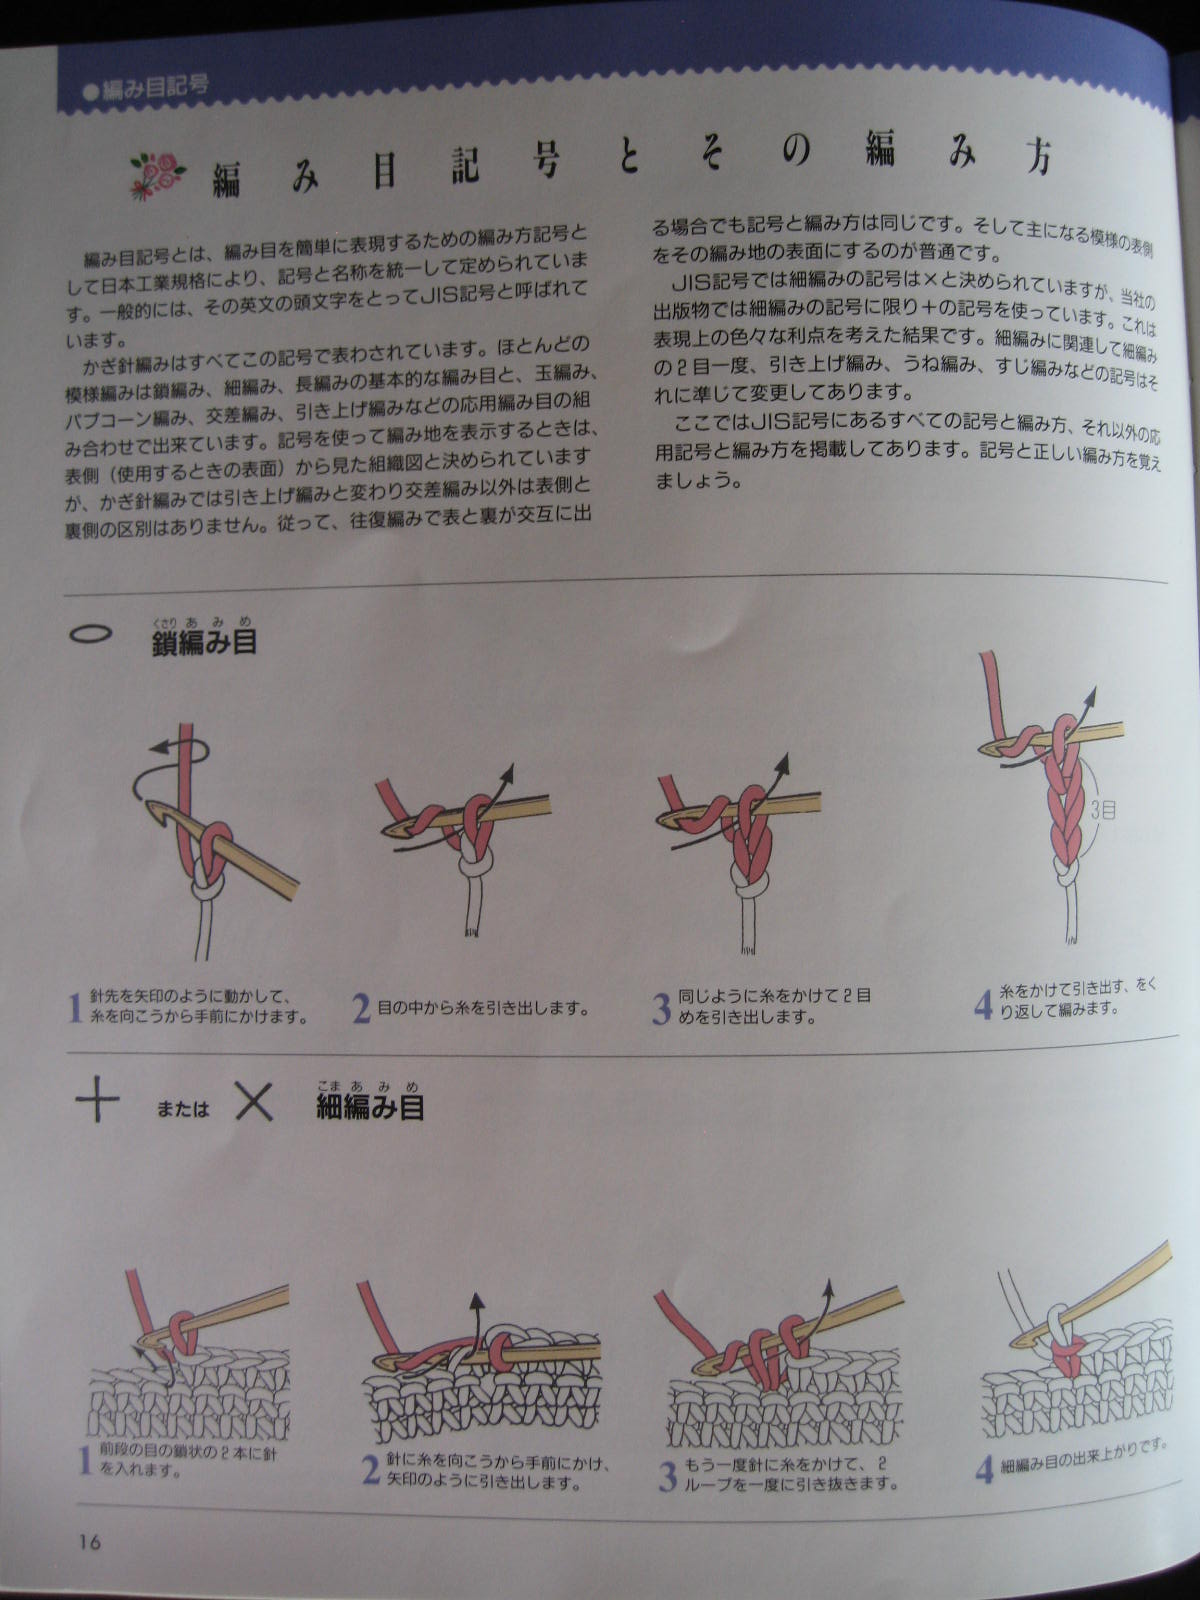 Japanese Crochet Diagrams http://redhead83402.blogspot.com/2010/04/japanese-diagram-crochet-explained.html